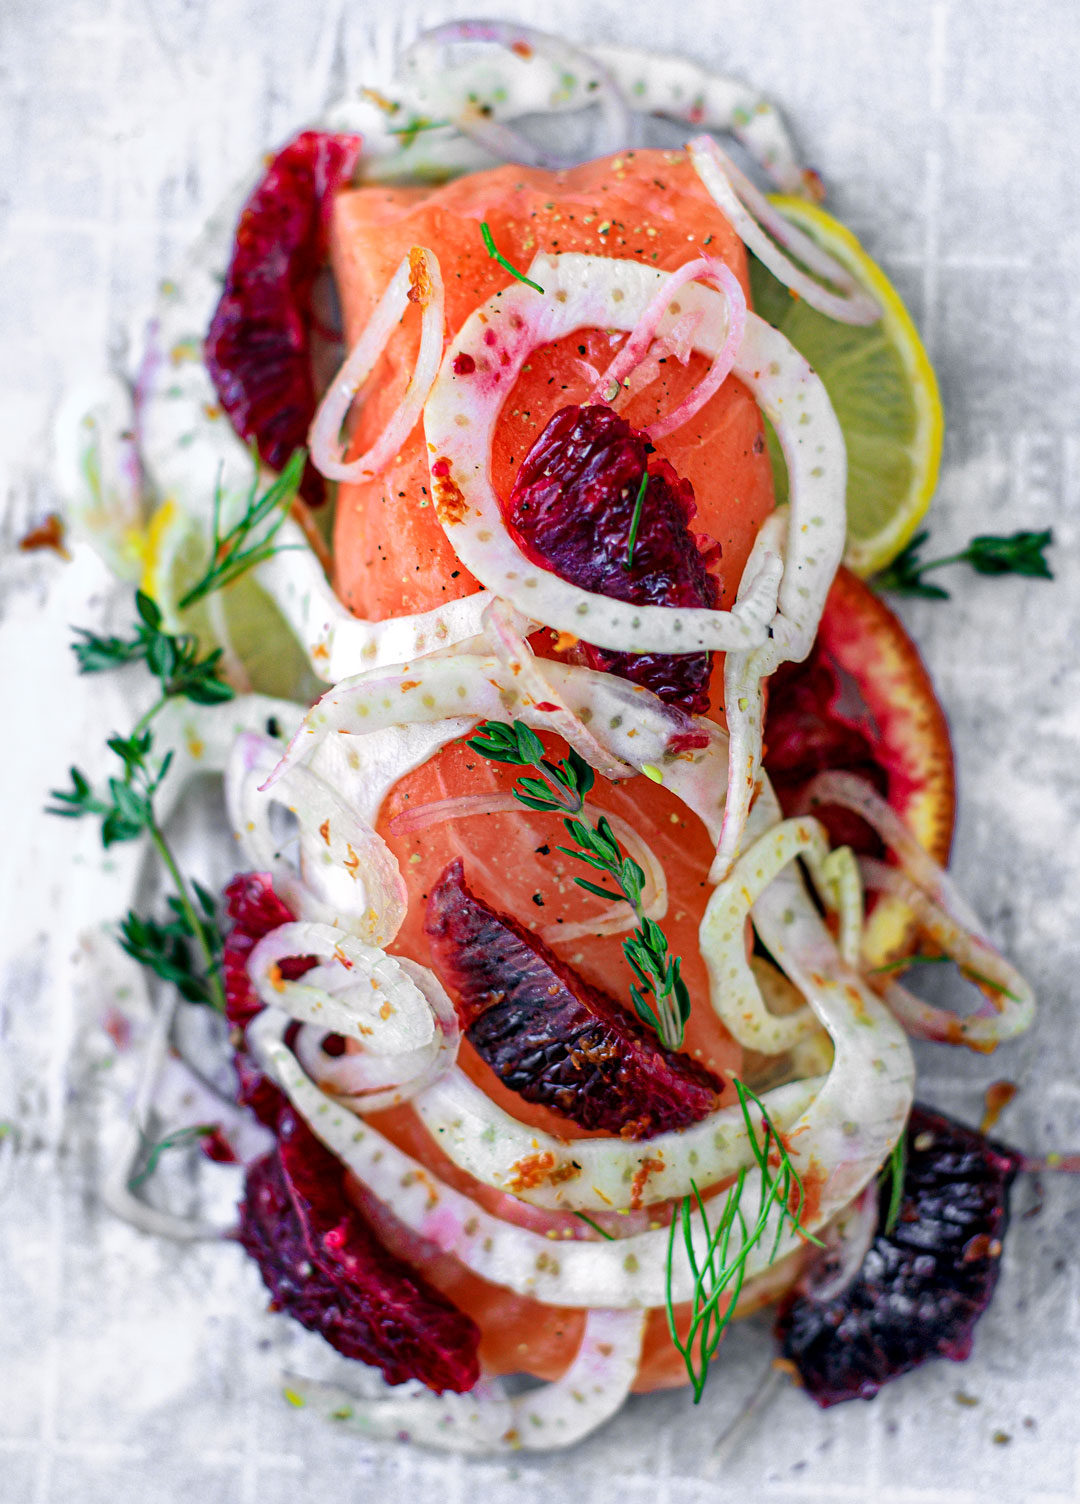 Uncooked salmon on parchment paper topped with a colorful salad of blood oranges and fennel.